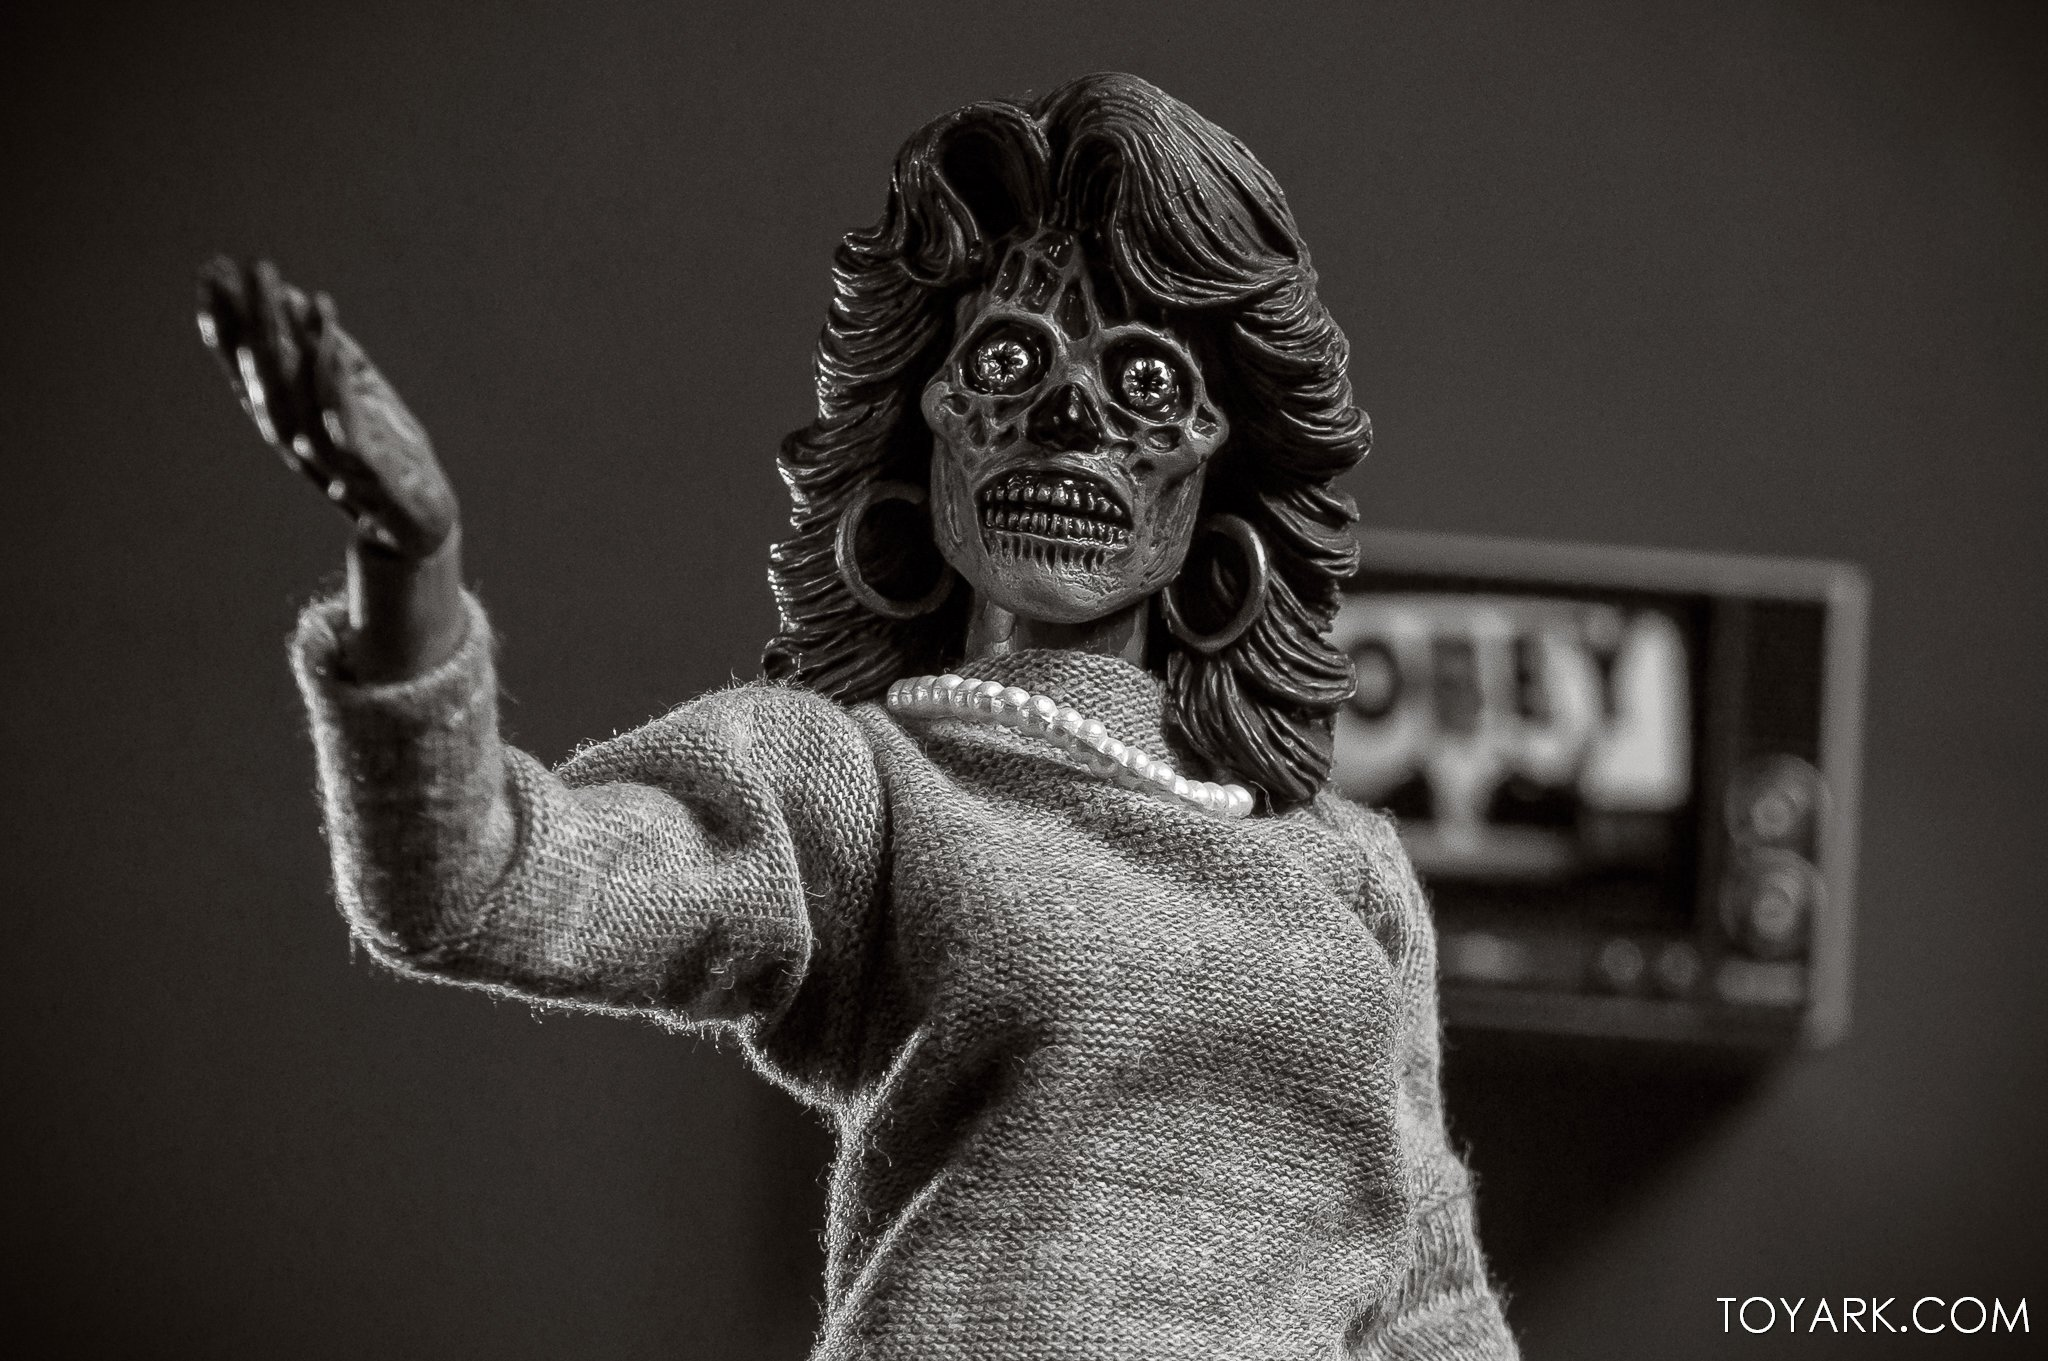 https://news.toyark.com/wp-content/uploads/sites/4/2019/11/NECA-They-Live-Ghouls-045.jpg